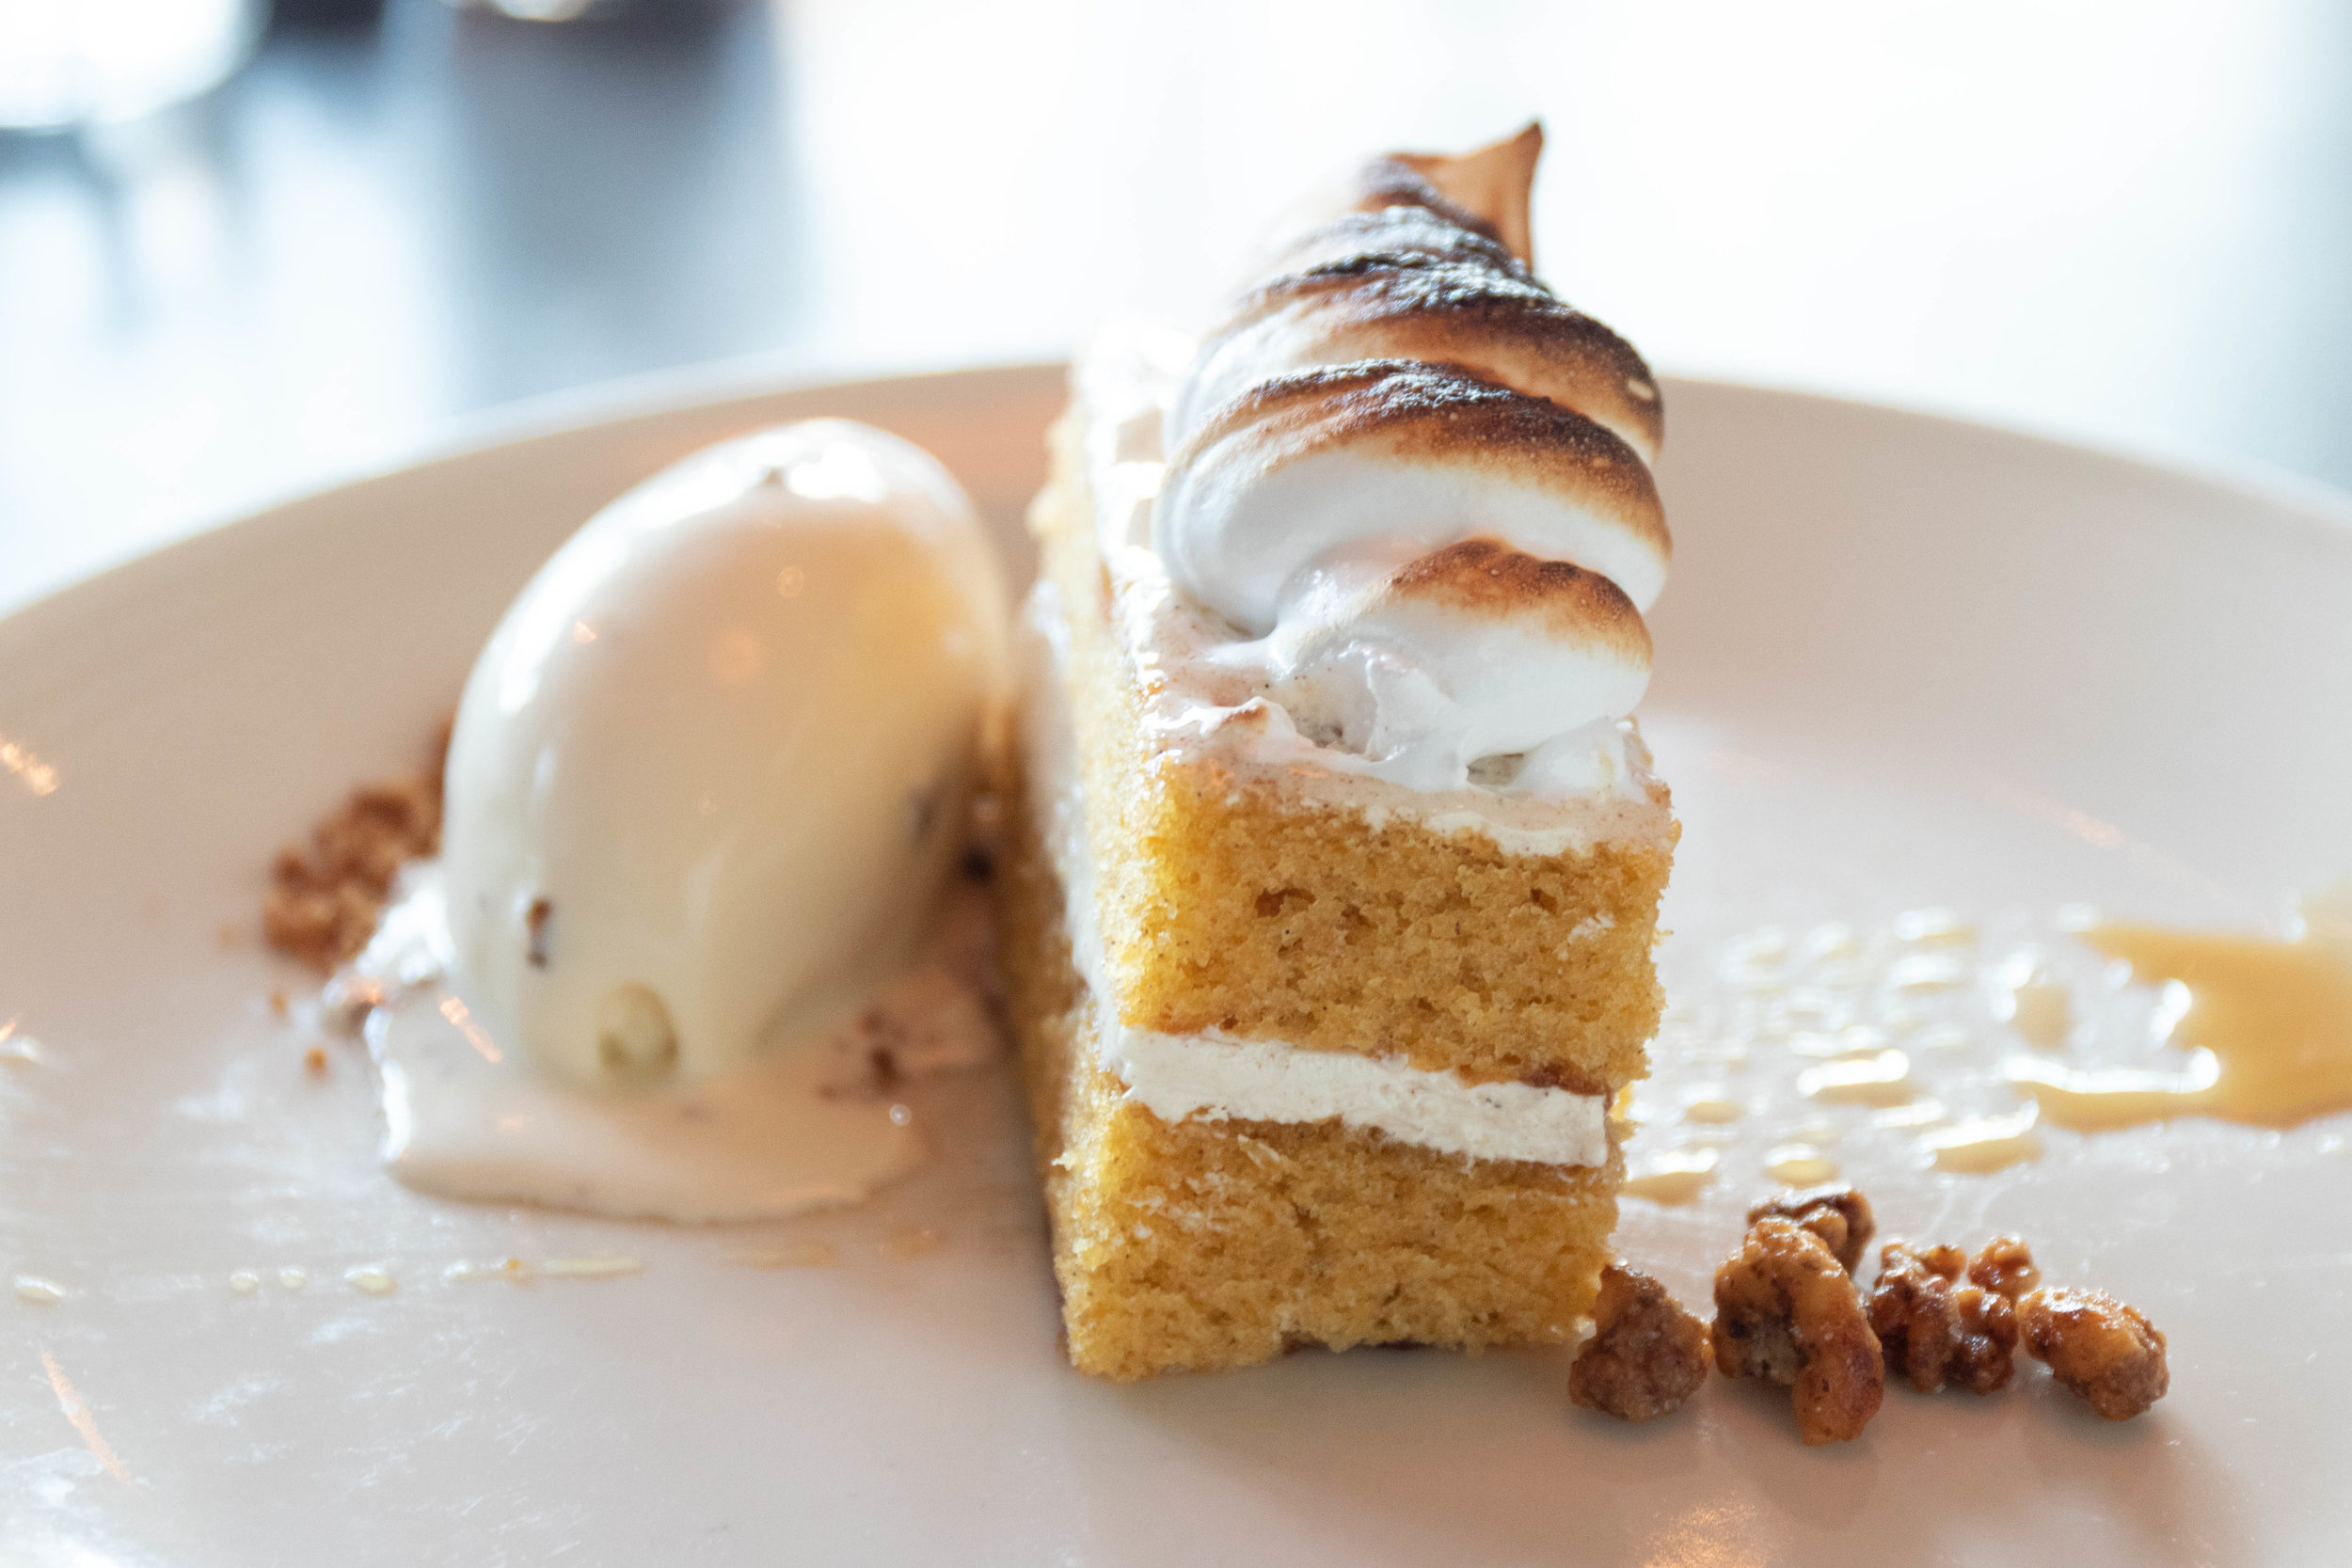 Professional food photo of cake at Scales in Portland, ME by Vision Balm in Charleston, SC.